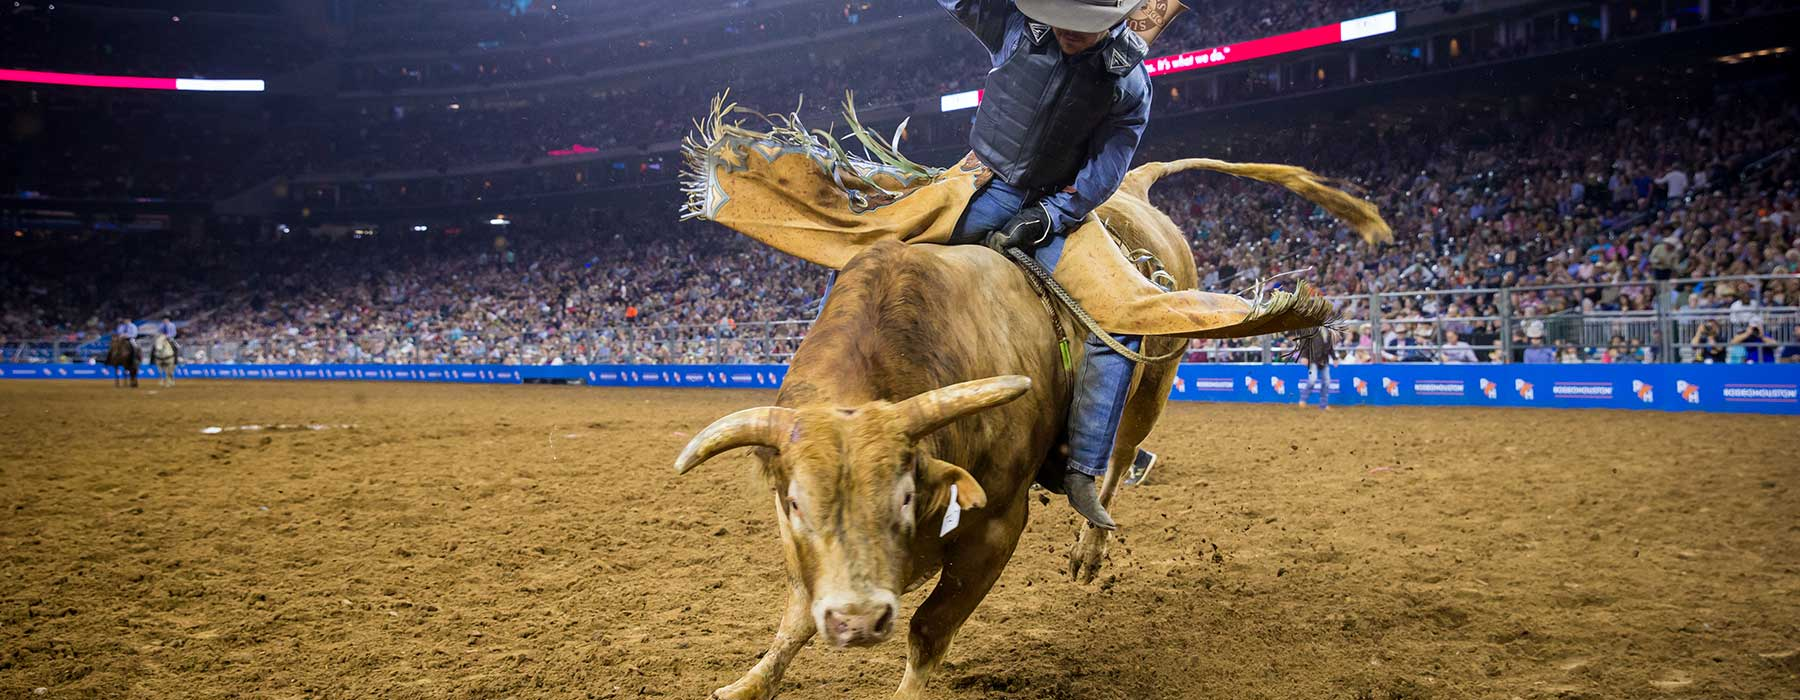 2019 Rodeohouston Season Tickets Houston Livestock Show